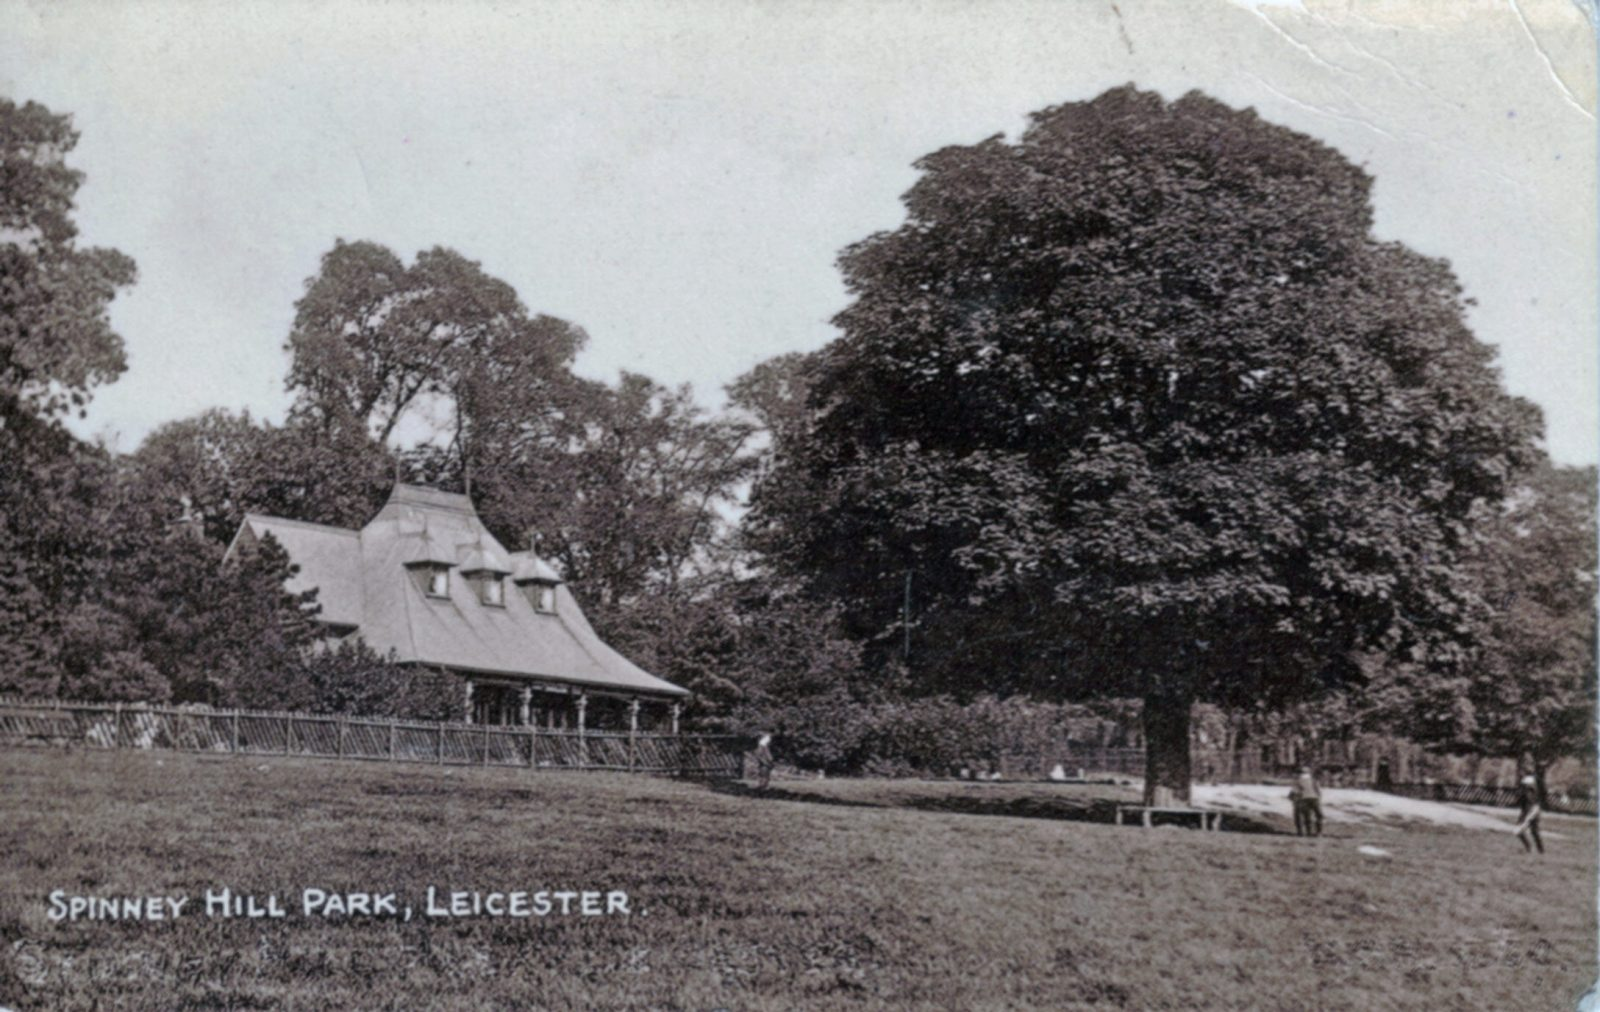 Spinney Hill Park, Leicester. 1901-1920: The Pavilion and specimen tree. Franked 1916 (File:1243)